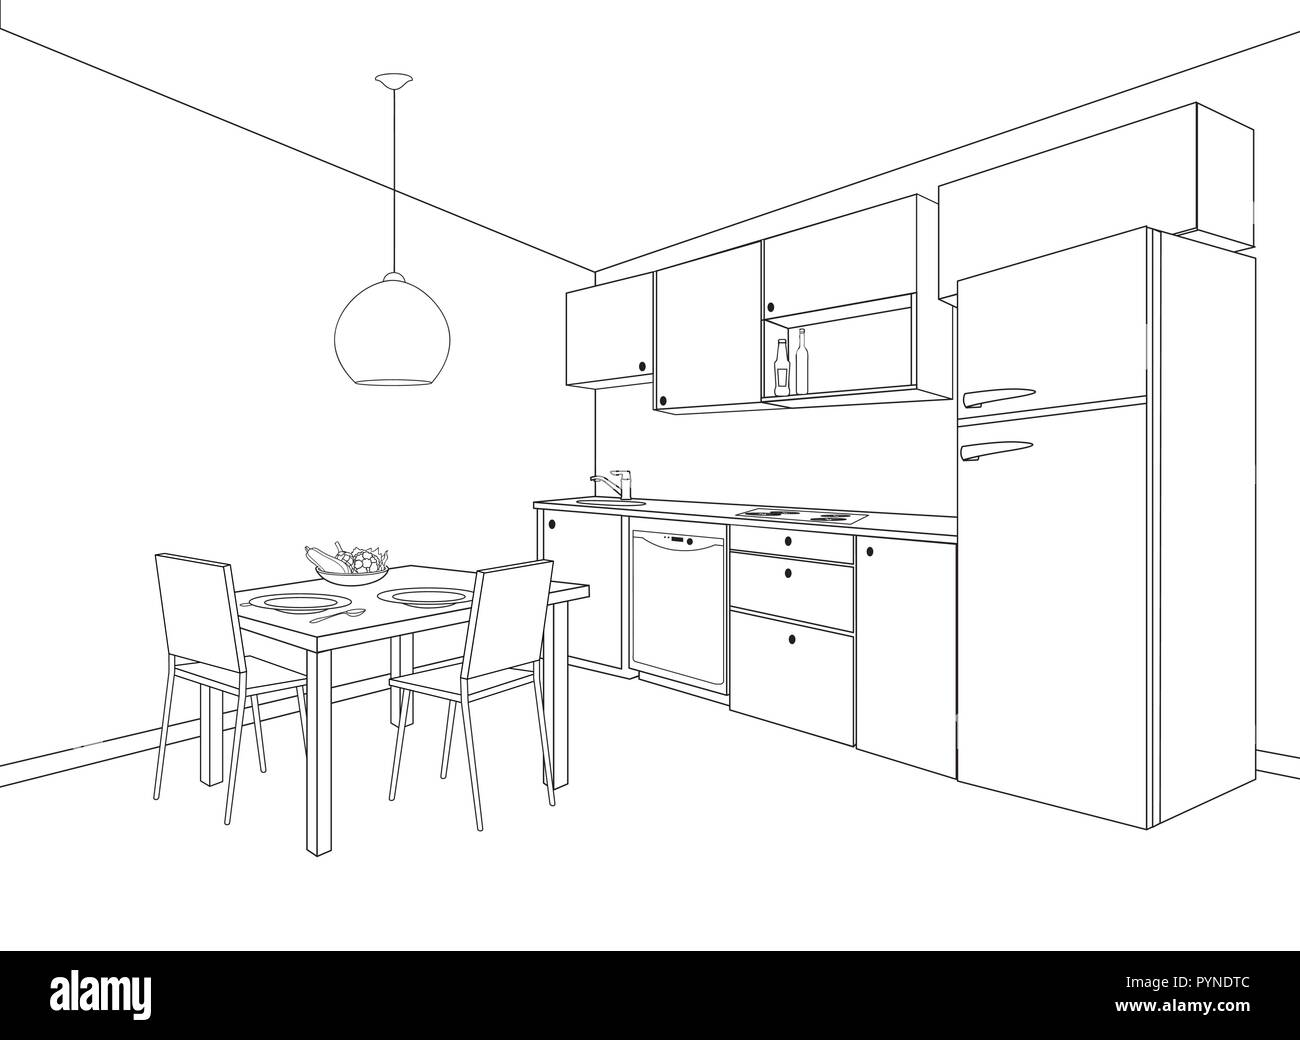 Interior Sketch Of Kitchen Room Outline Blueprint Design Of Kitchen